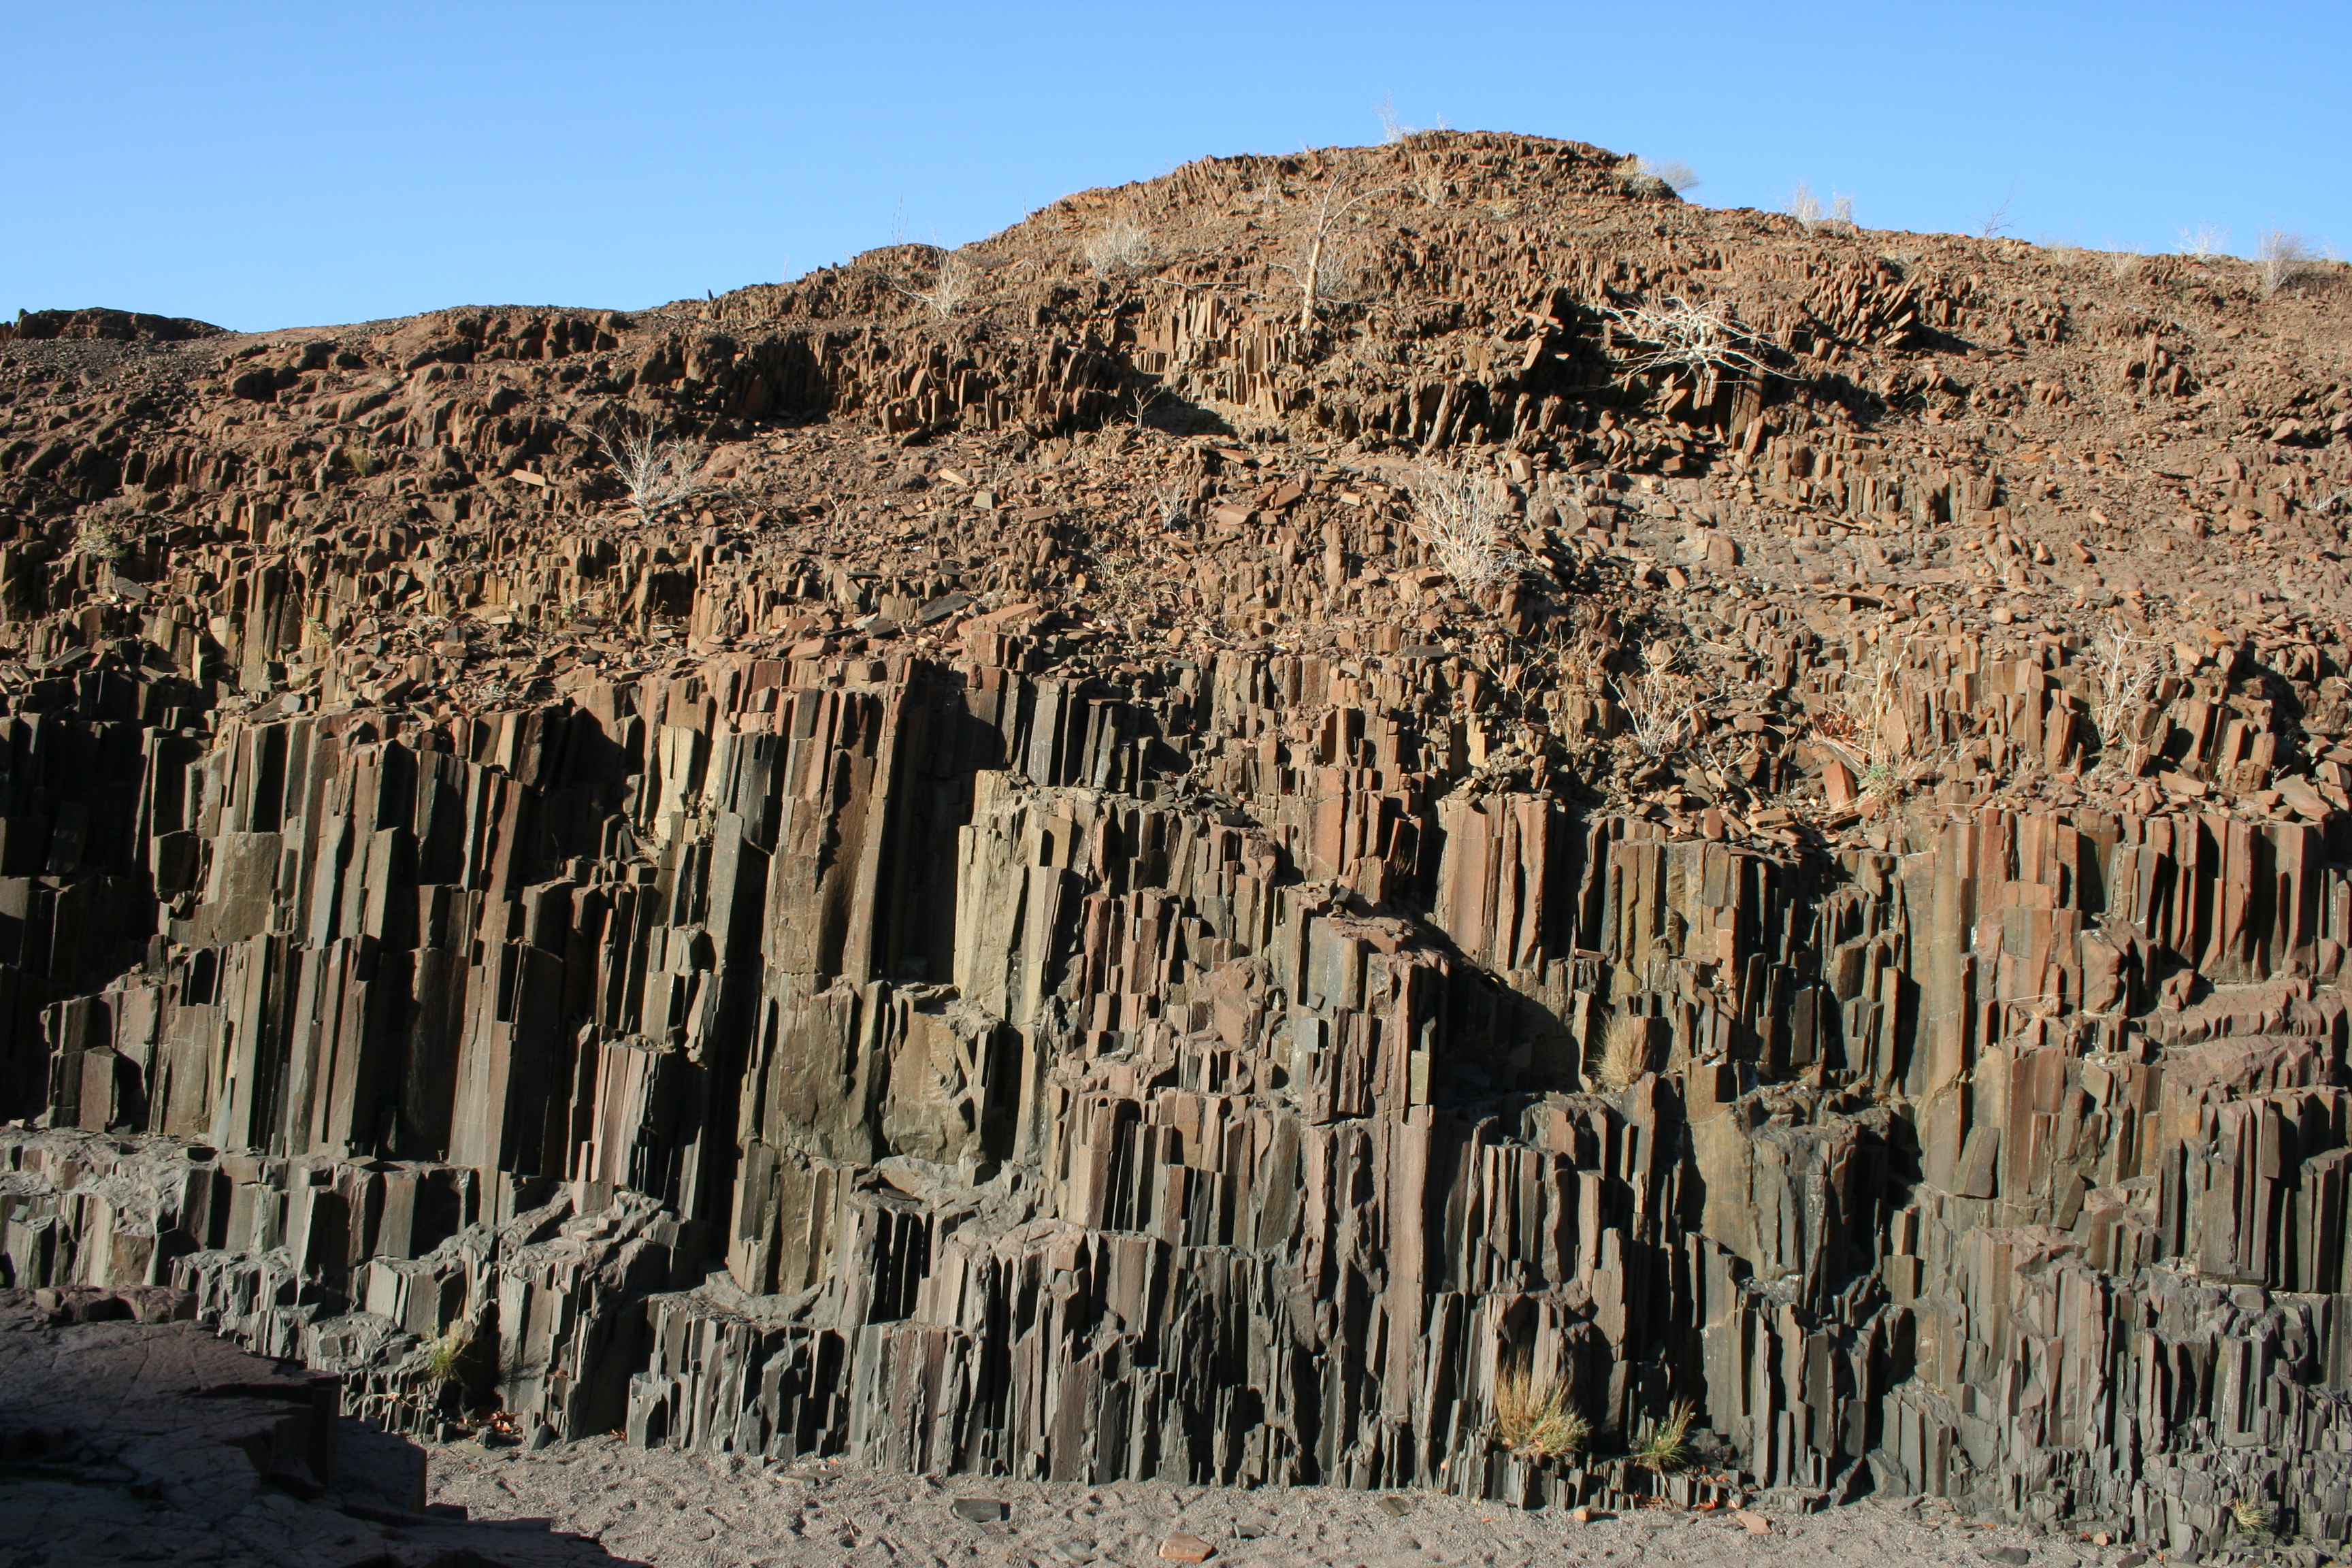 Organ Pipes Damaraland.JPG